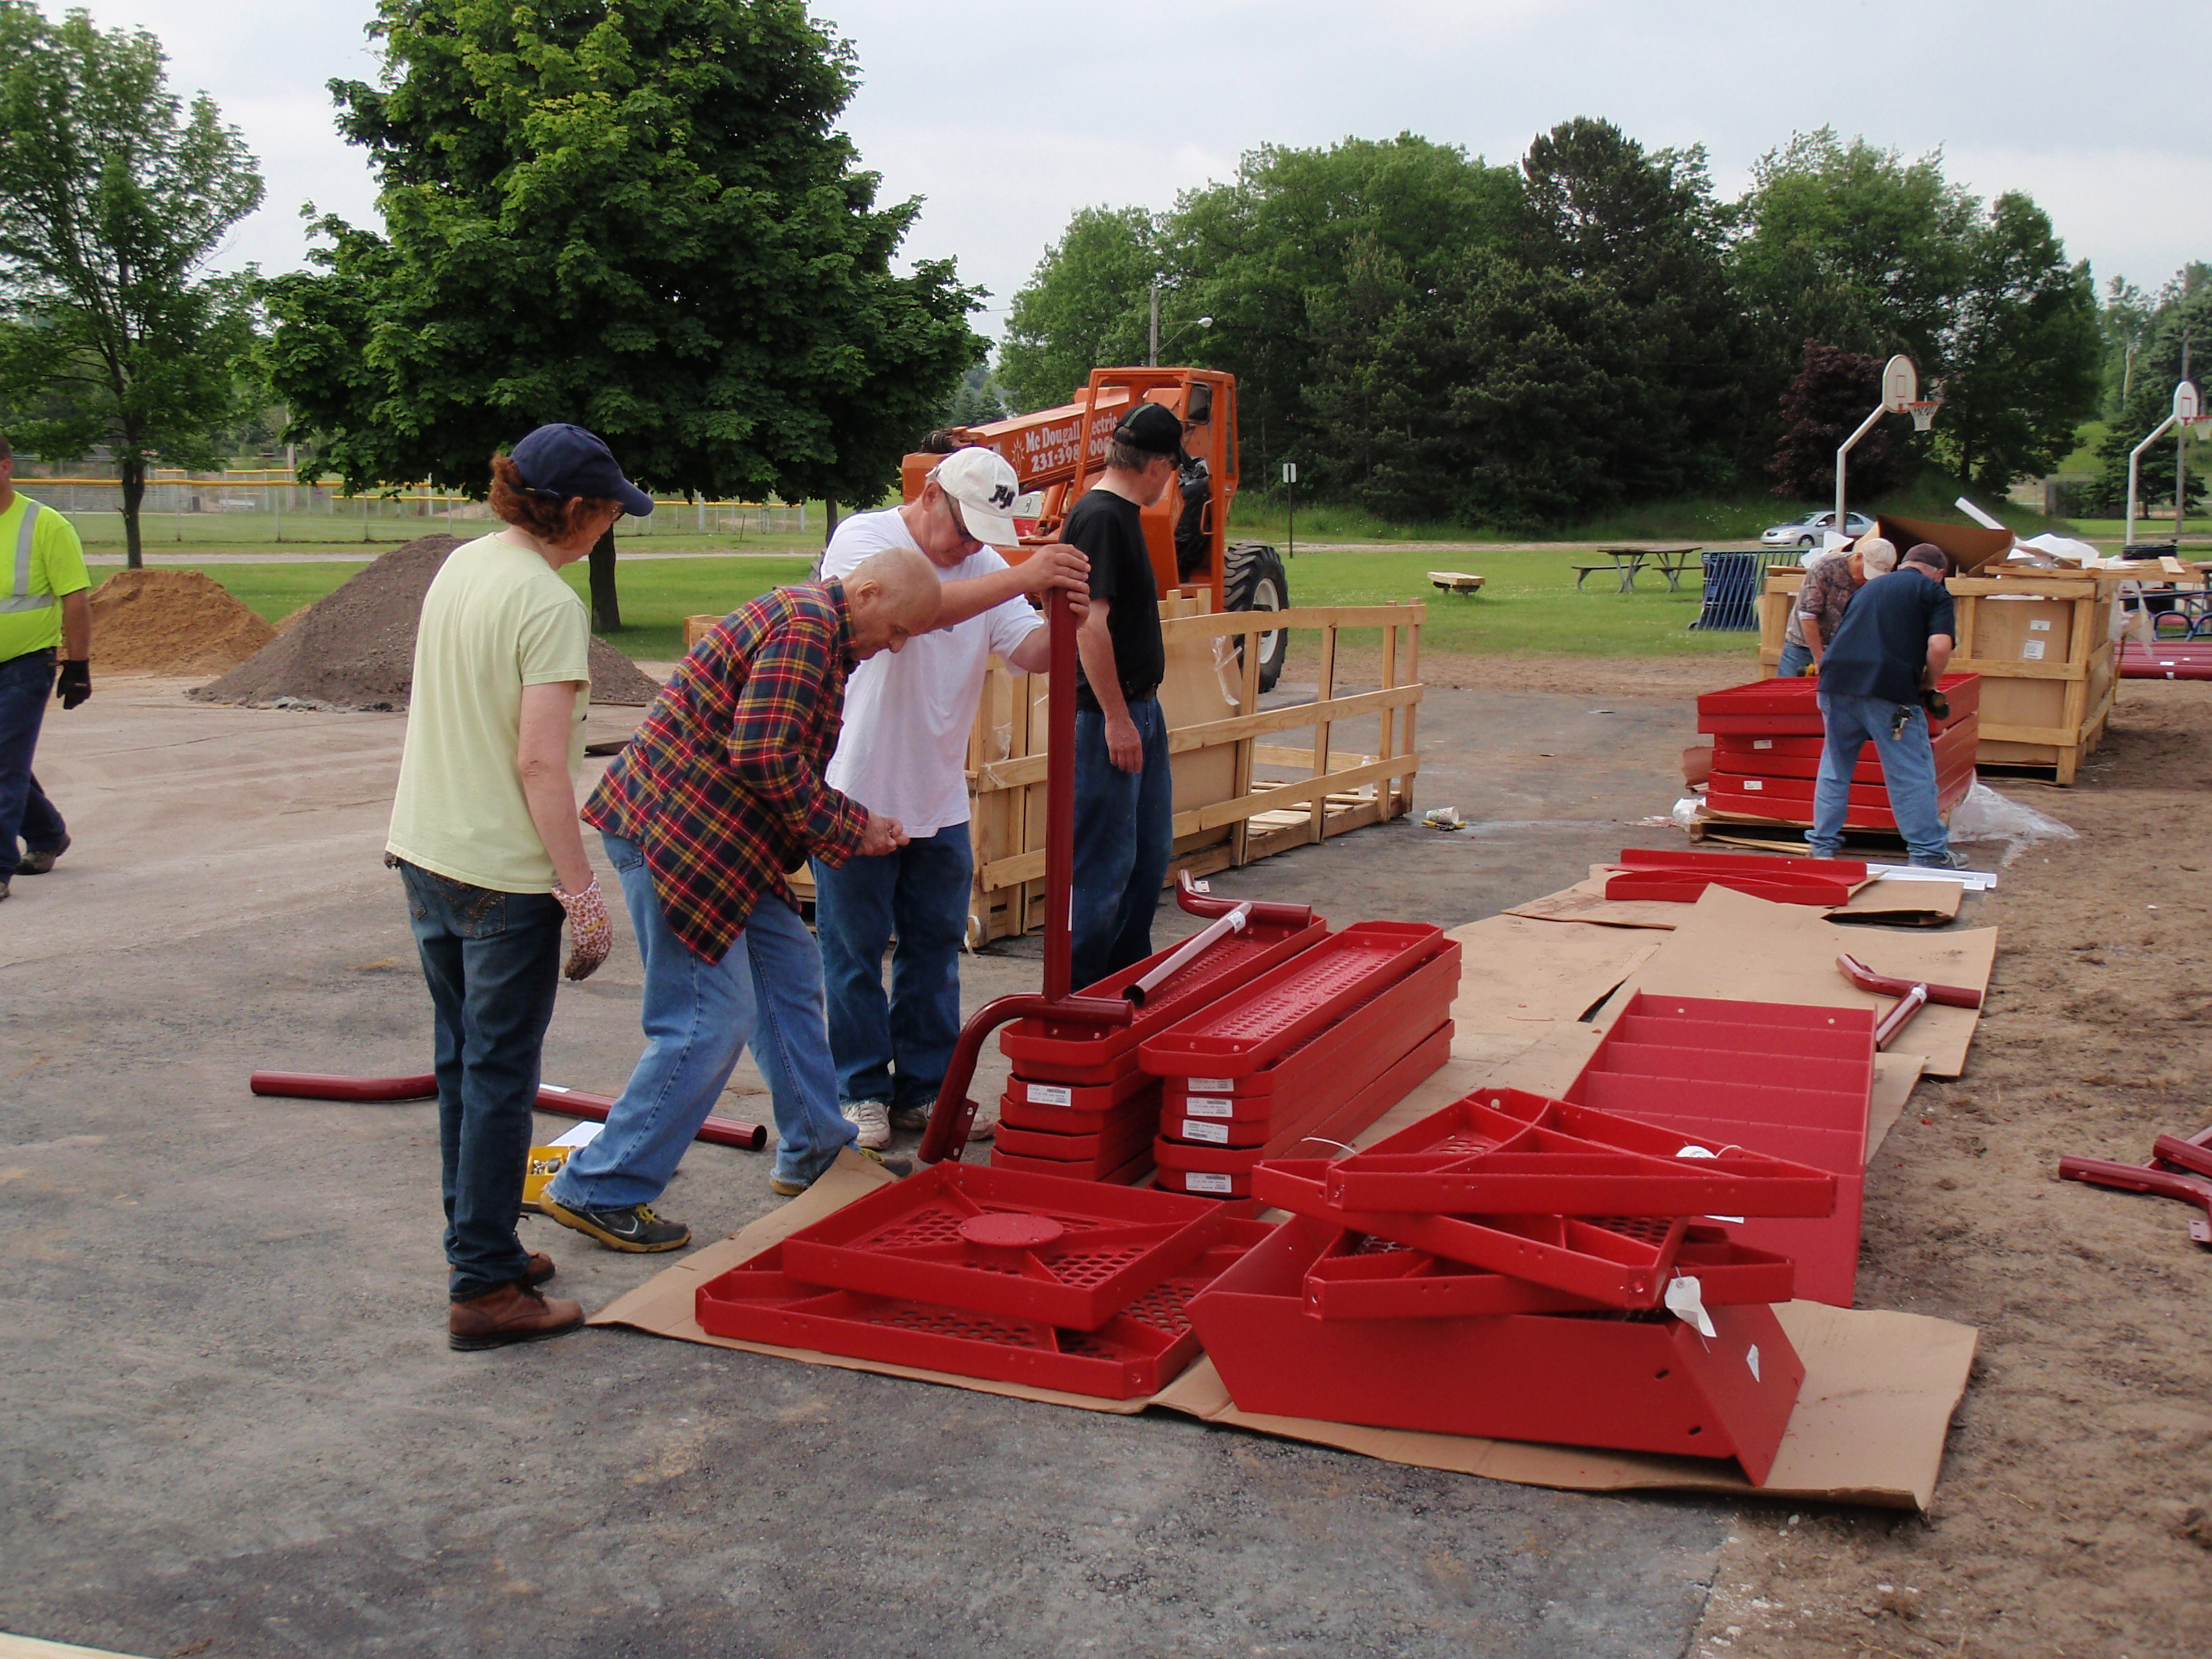 Workers are unpacking the playground equipment for the community build of Rocket Park